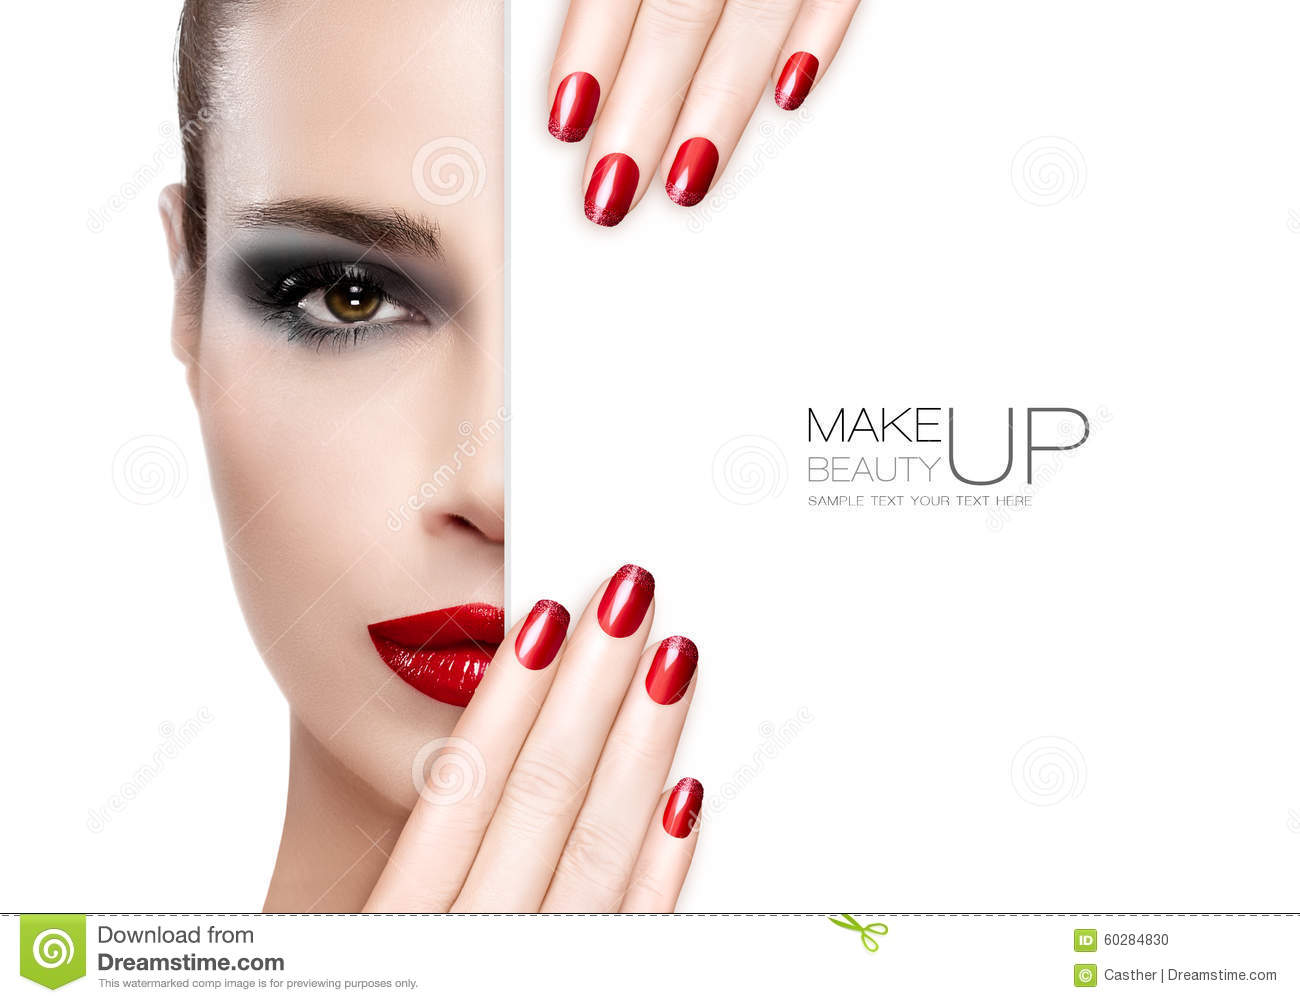 beauty-makeup-nail-art-concept-nai-beautiful-fashion-model-woman-smoky-eye-foundation-unblemished-skin-trendy-60284830.jpg